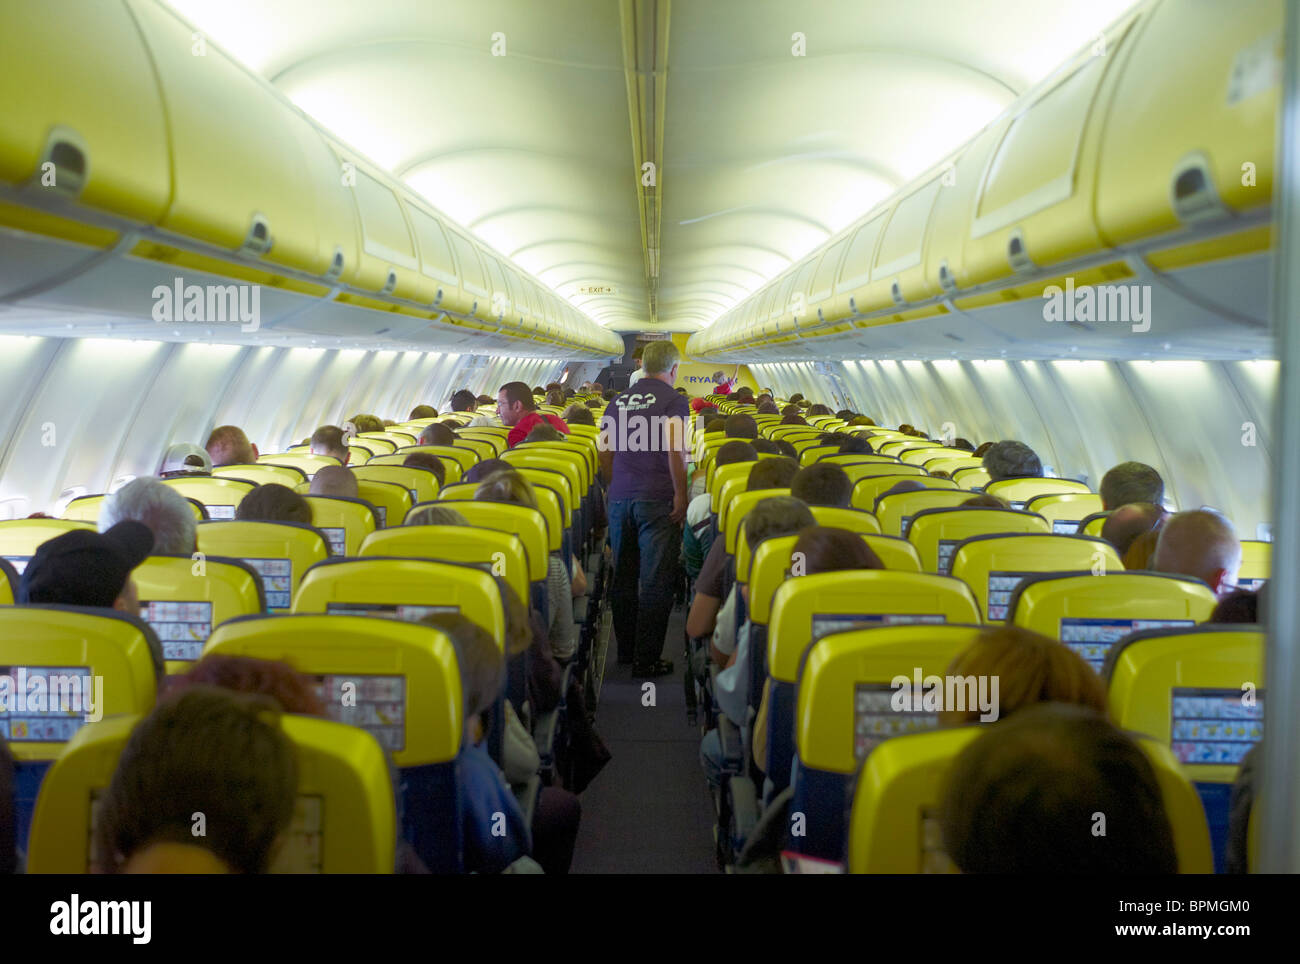 Passengers in the cabin of a Ryanair plane in flight - Stock Image